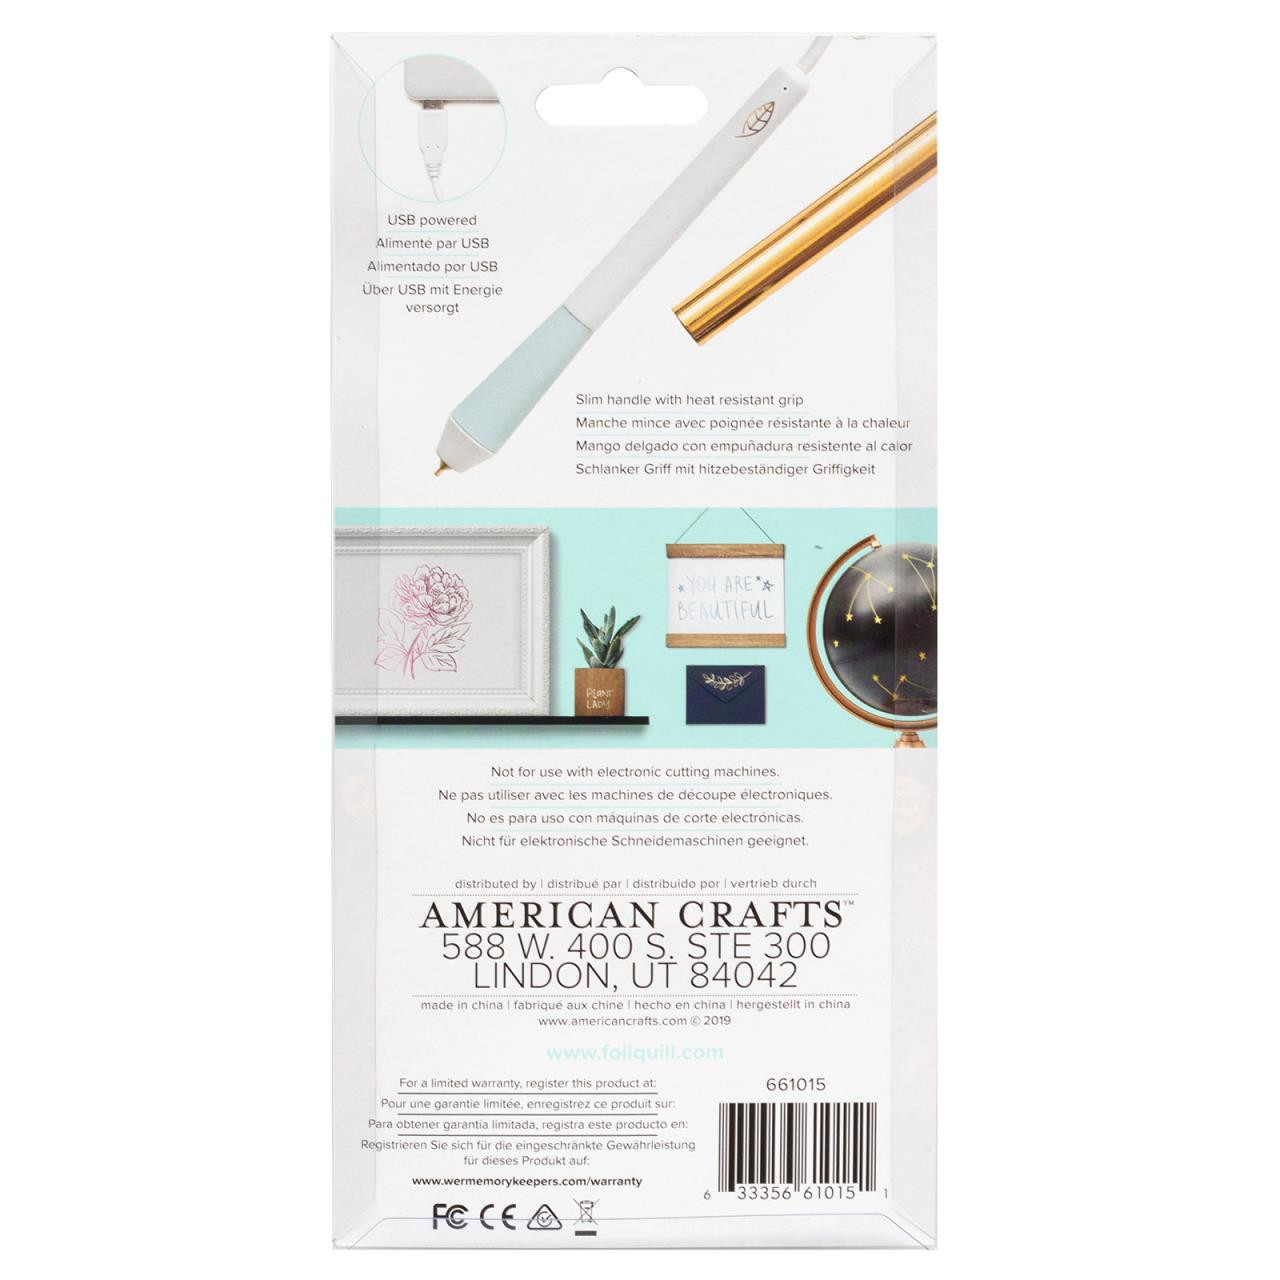 Foil Quill Freestyle Pen Standard Tip, American Crafts Tools - 633356610151